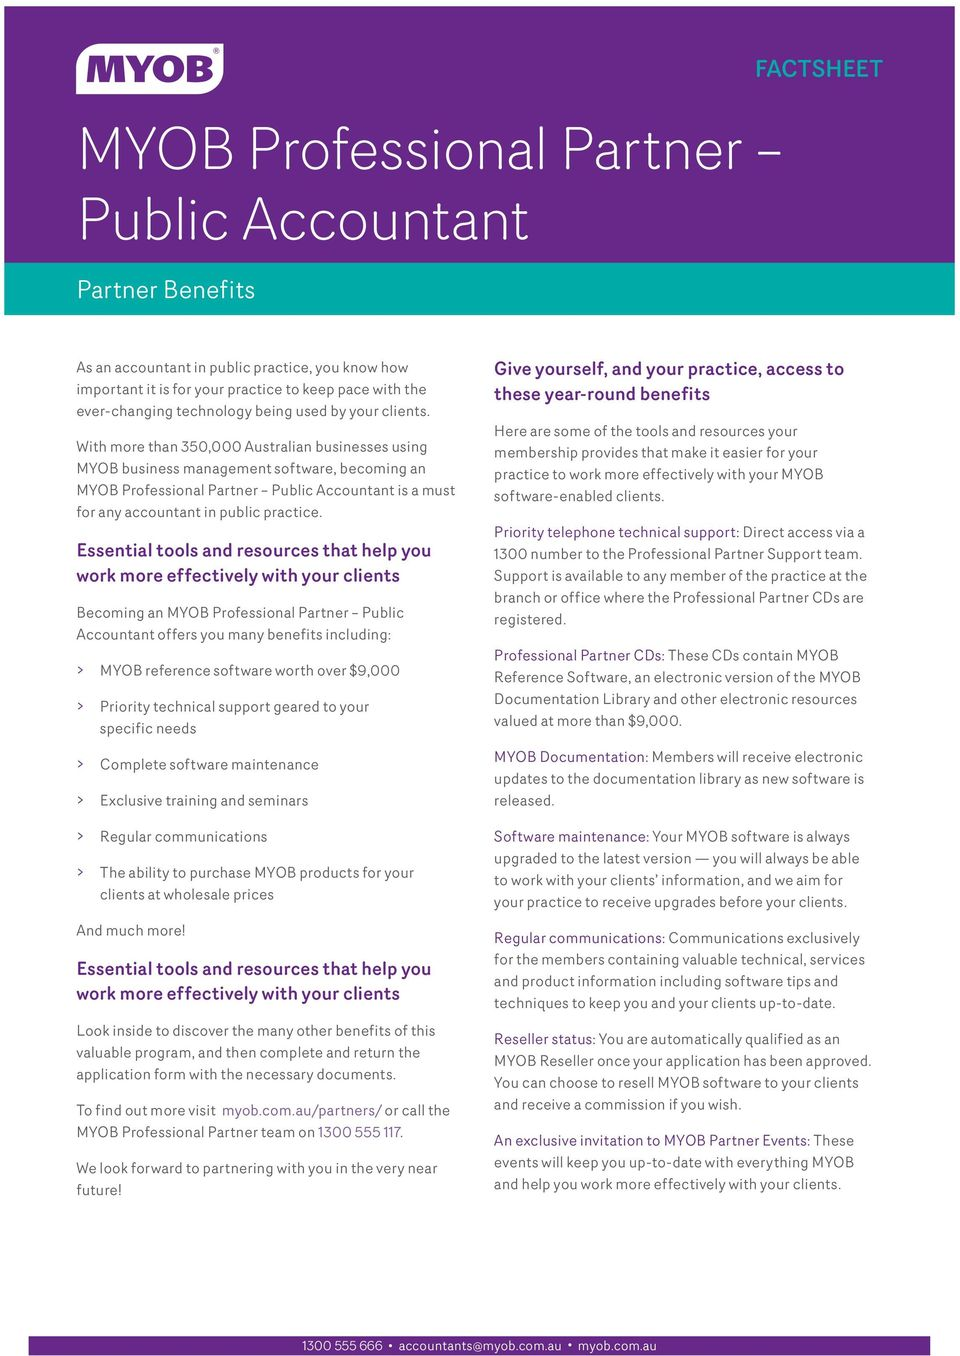 With more than 350,000 Australian businesses using MYOB business management software, becoming an MYOB Professional Partner Public Accountant is a must for any accountant in public practice.